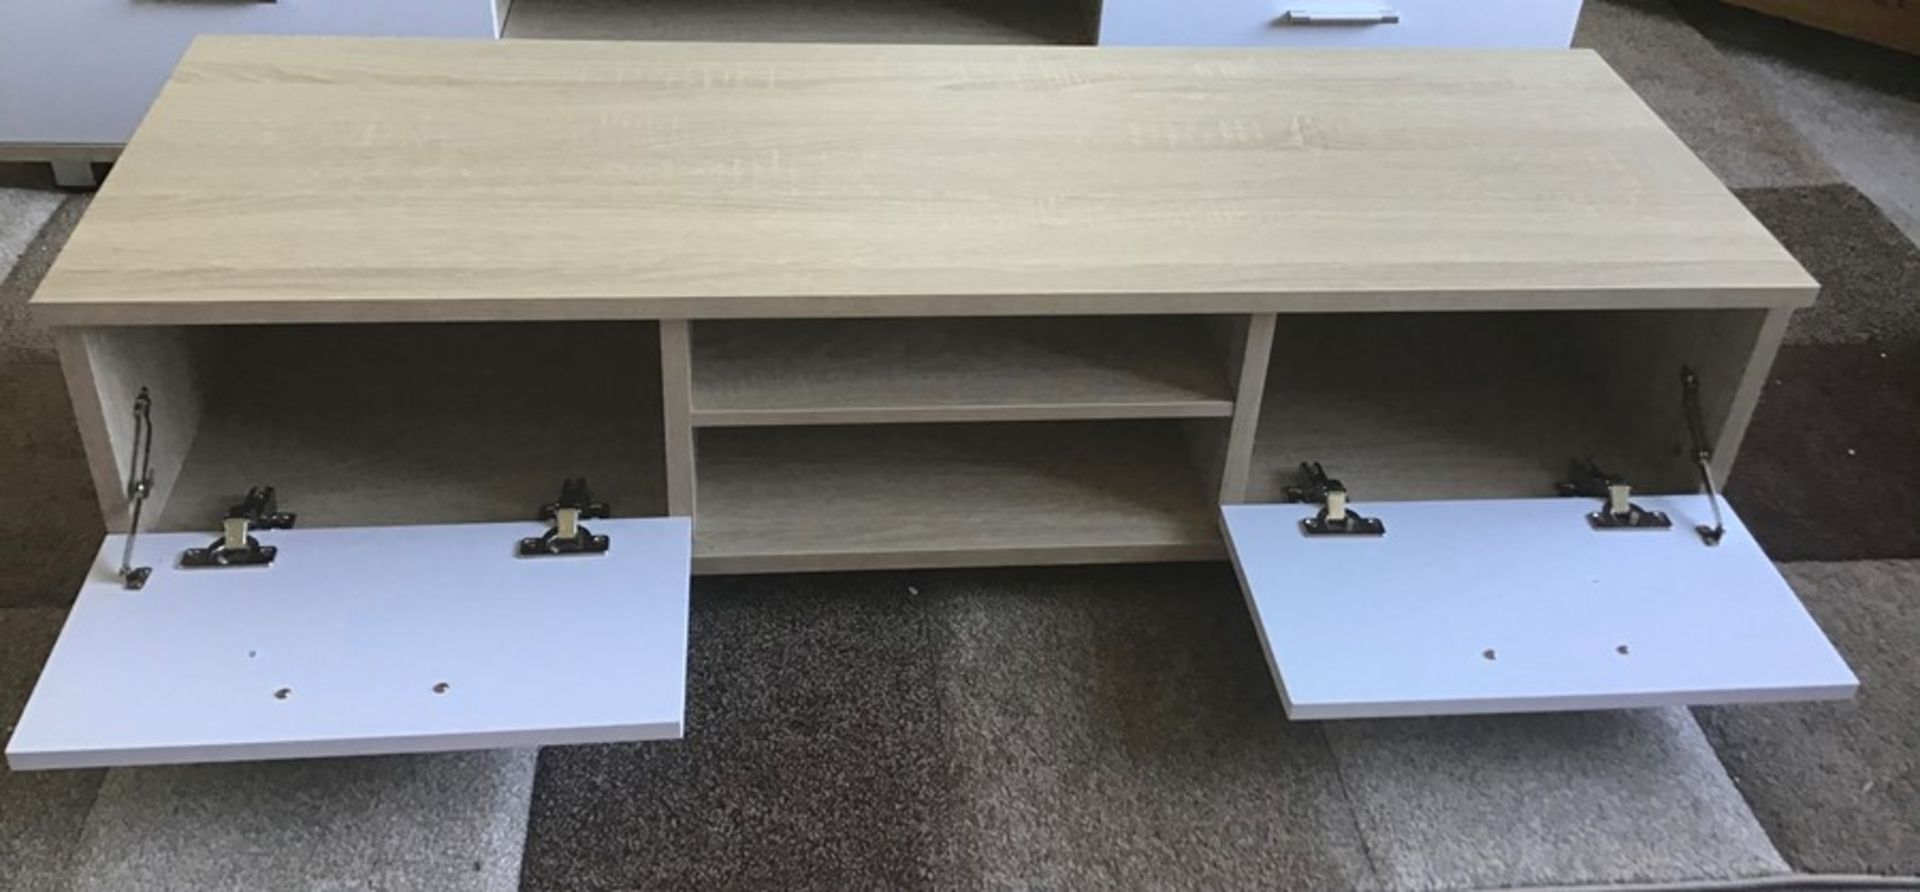 Oak and white 128cm TV stand, brand new, flat packed and boxed. RRP Circa £100.00 |3x Boxes - Image 2 of 3